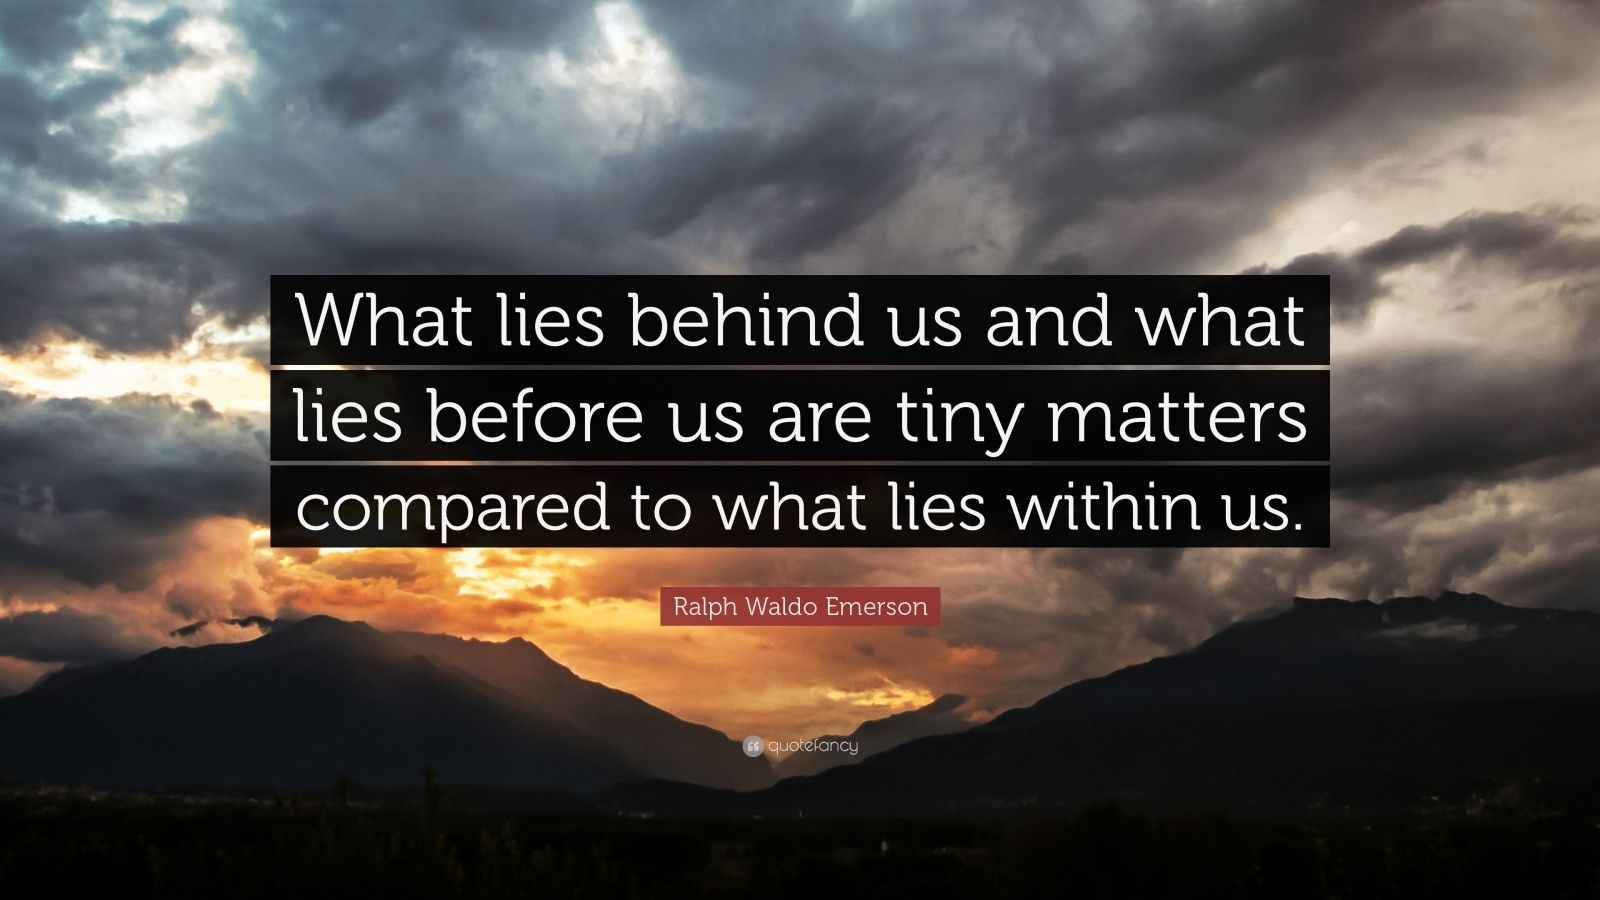 Persistence Quotes Wallpapers Ralph Waldo Emerson Quote What Lies Behind Us And What